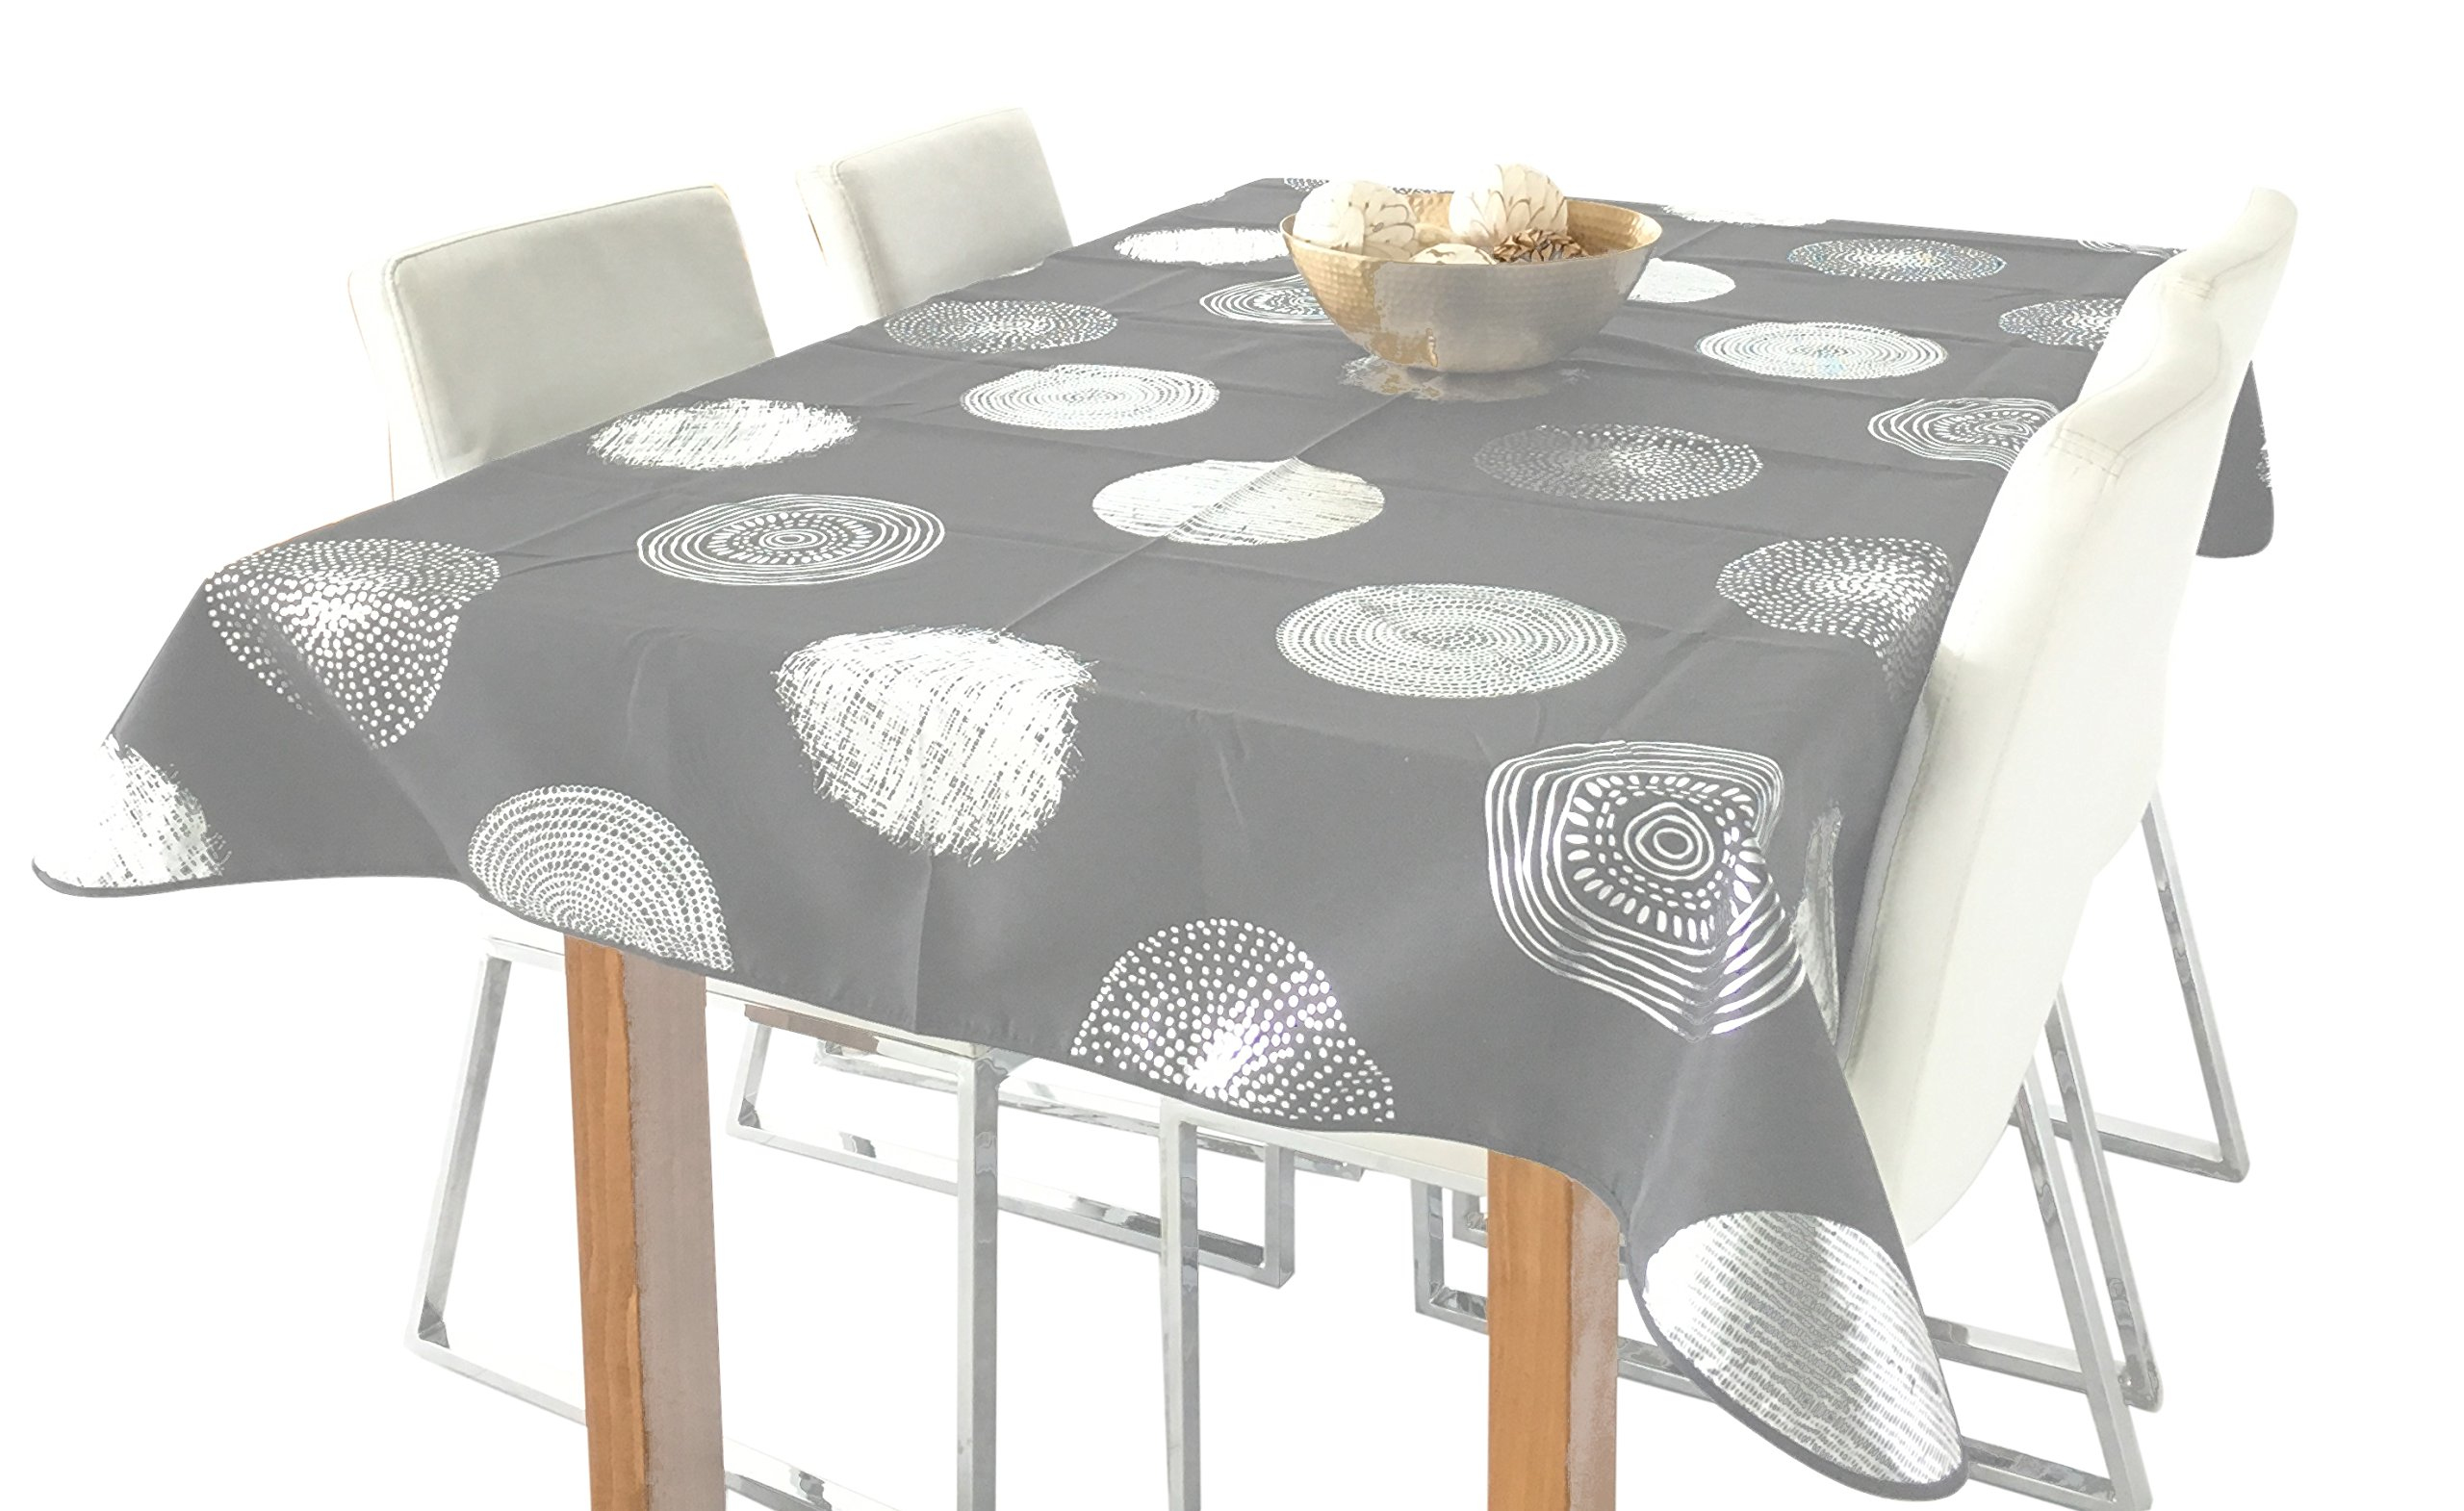 My Jolie Home Silver Circle Rectangular Stain Resistant Tablecloth, 60 x 95-Inch - Grey & Silver - Rectangular Tablecloth - Seats 8 to 10 People Stain resistant, spill-proof, liquid spills bead up, teflon coating makes clean-up easy Tablecloths are great for dinners: kids parties, picnics; BBQ's, potlucks, parties, holidays, and restaurants. - tablecloths, kitchen-dining-room-table-linens, kitchen-dining-room - 81dUa22MqcL -